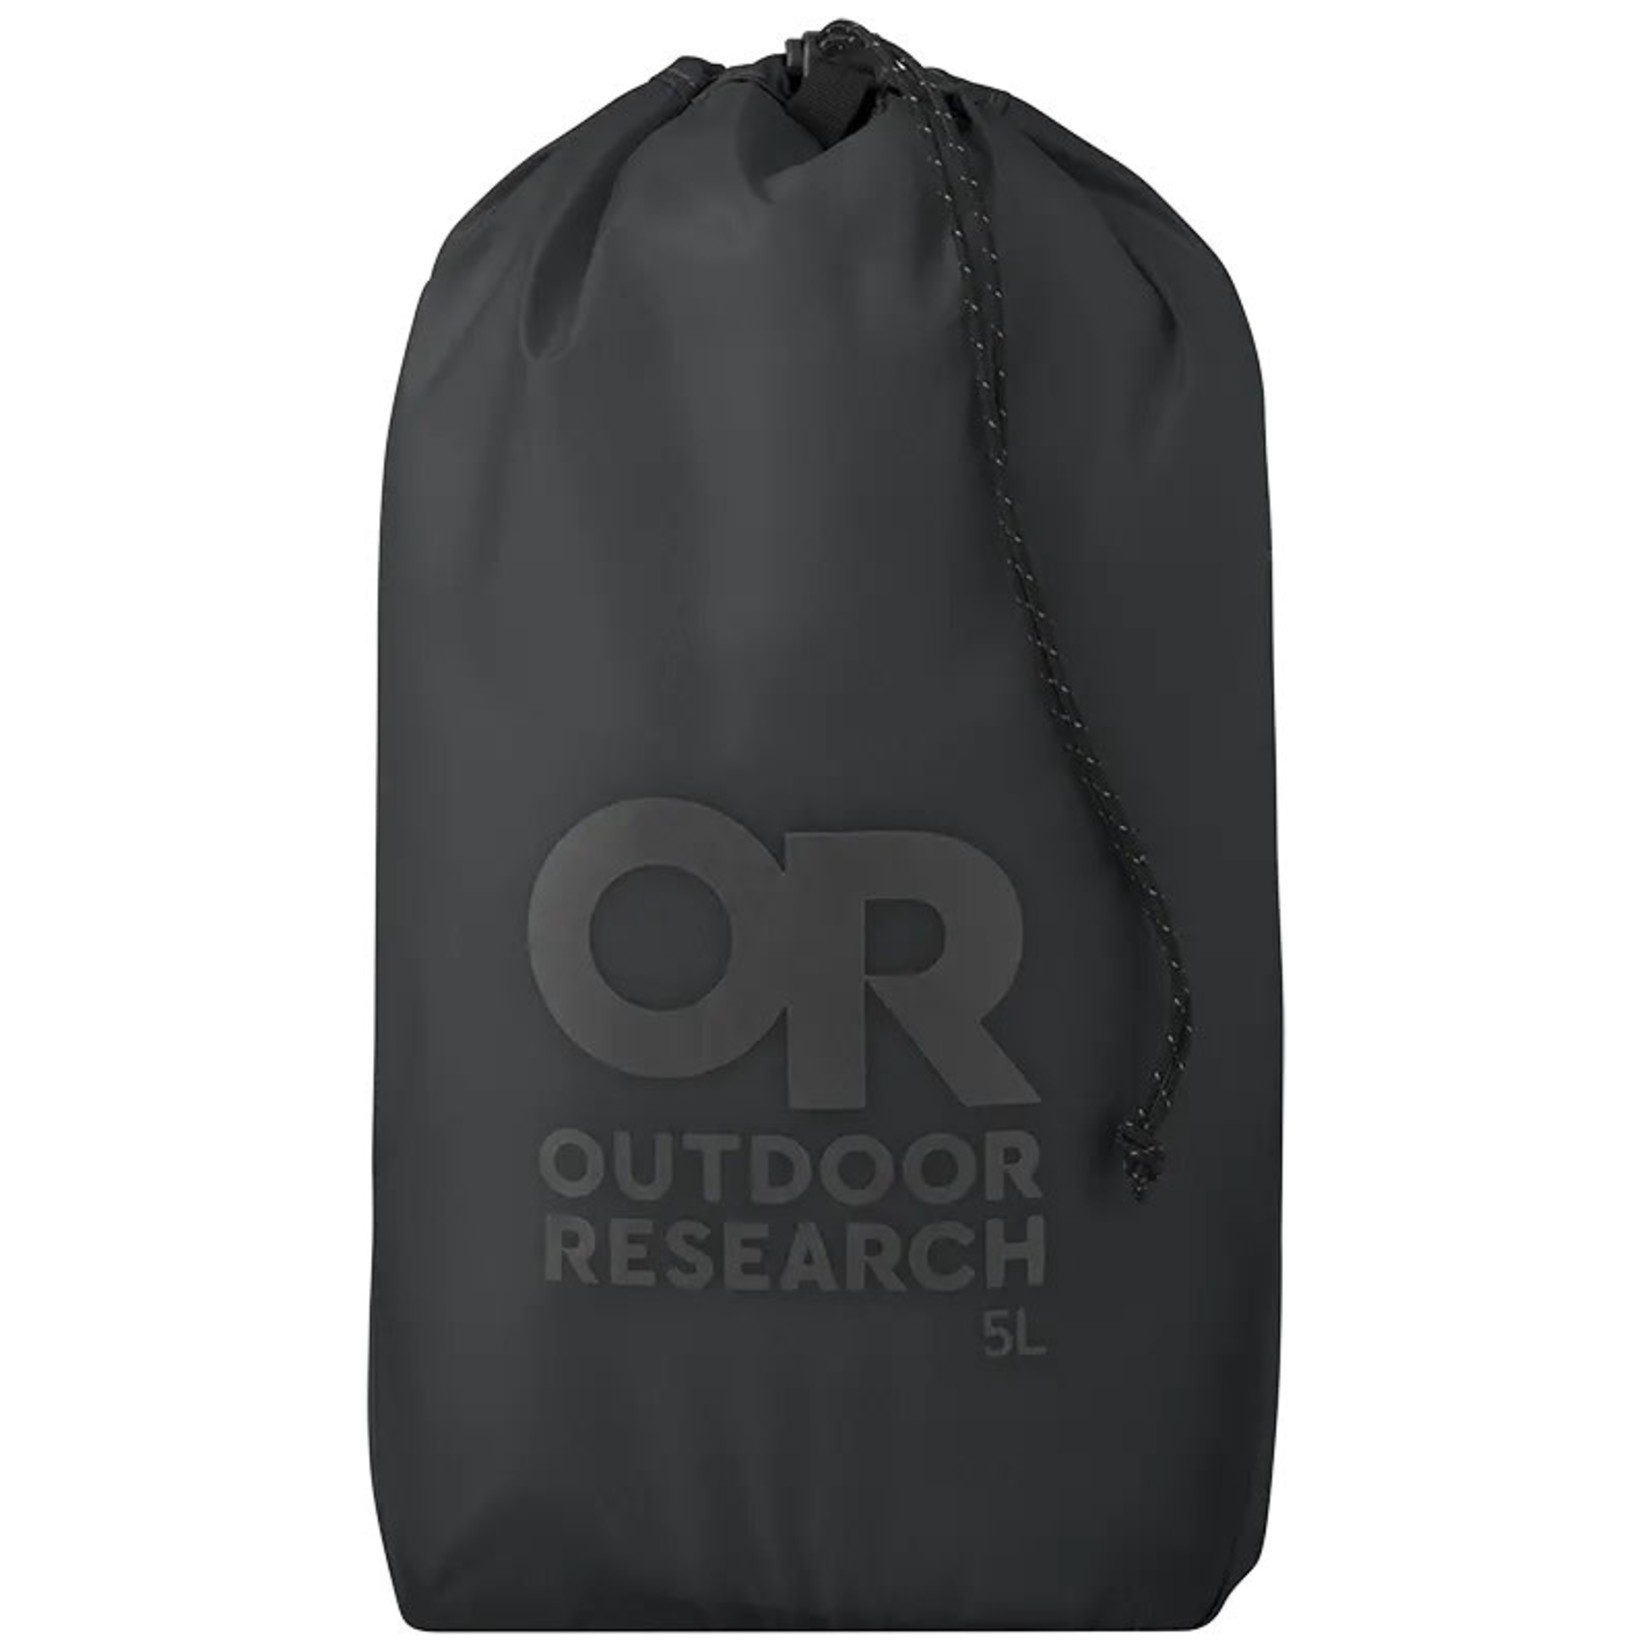 Outdoor Research Outdoor Research Ultralight Stuff Sack - 5L